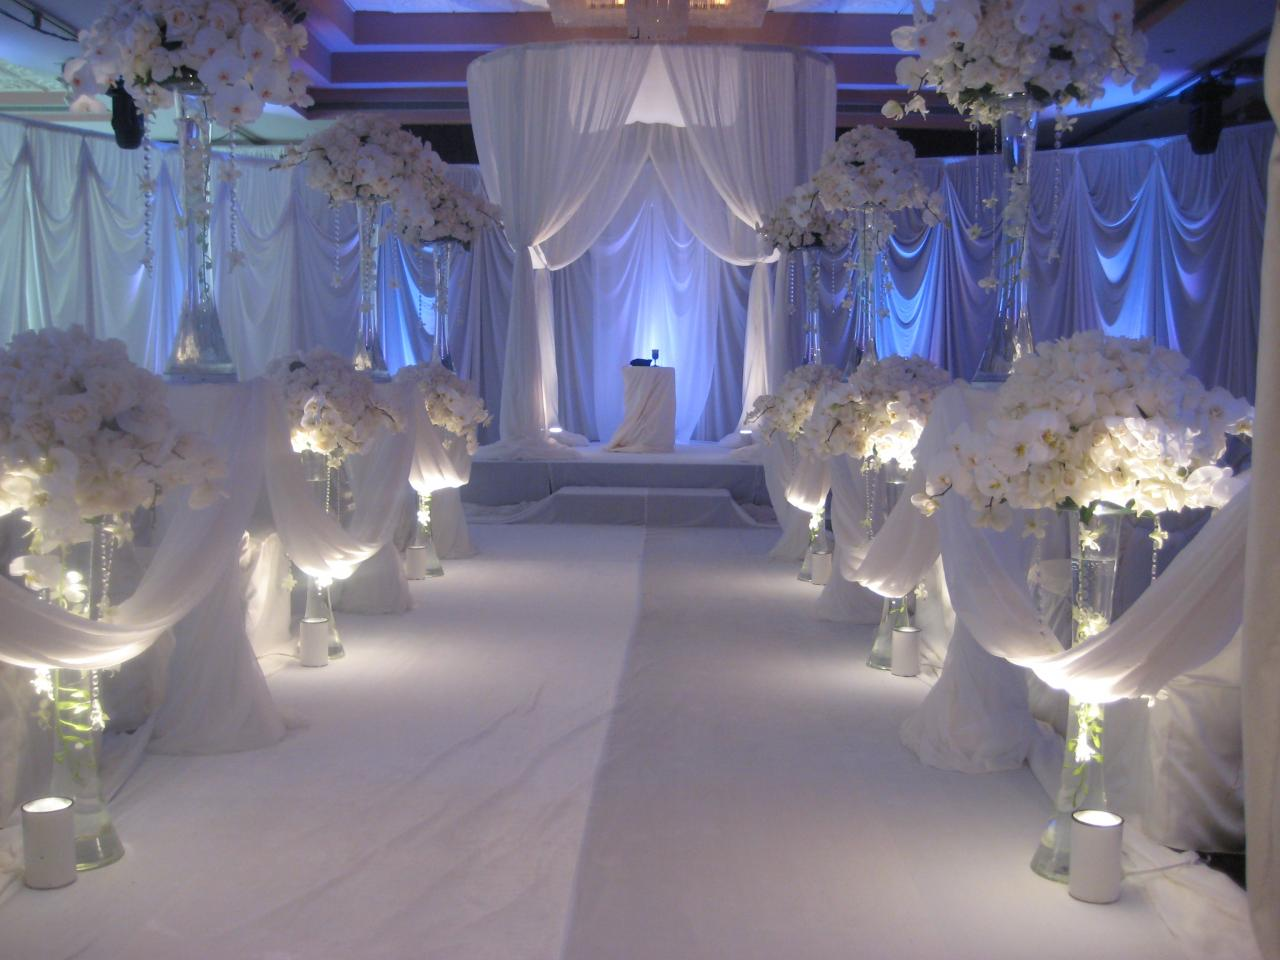 All White Indoor Wedding Ceremony Site: Wedding Decorations: Wedding Decorations Accessories